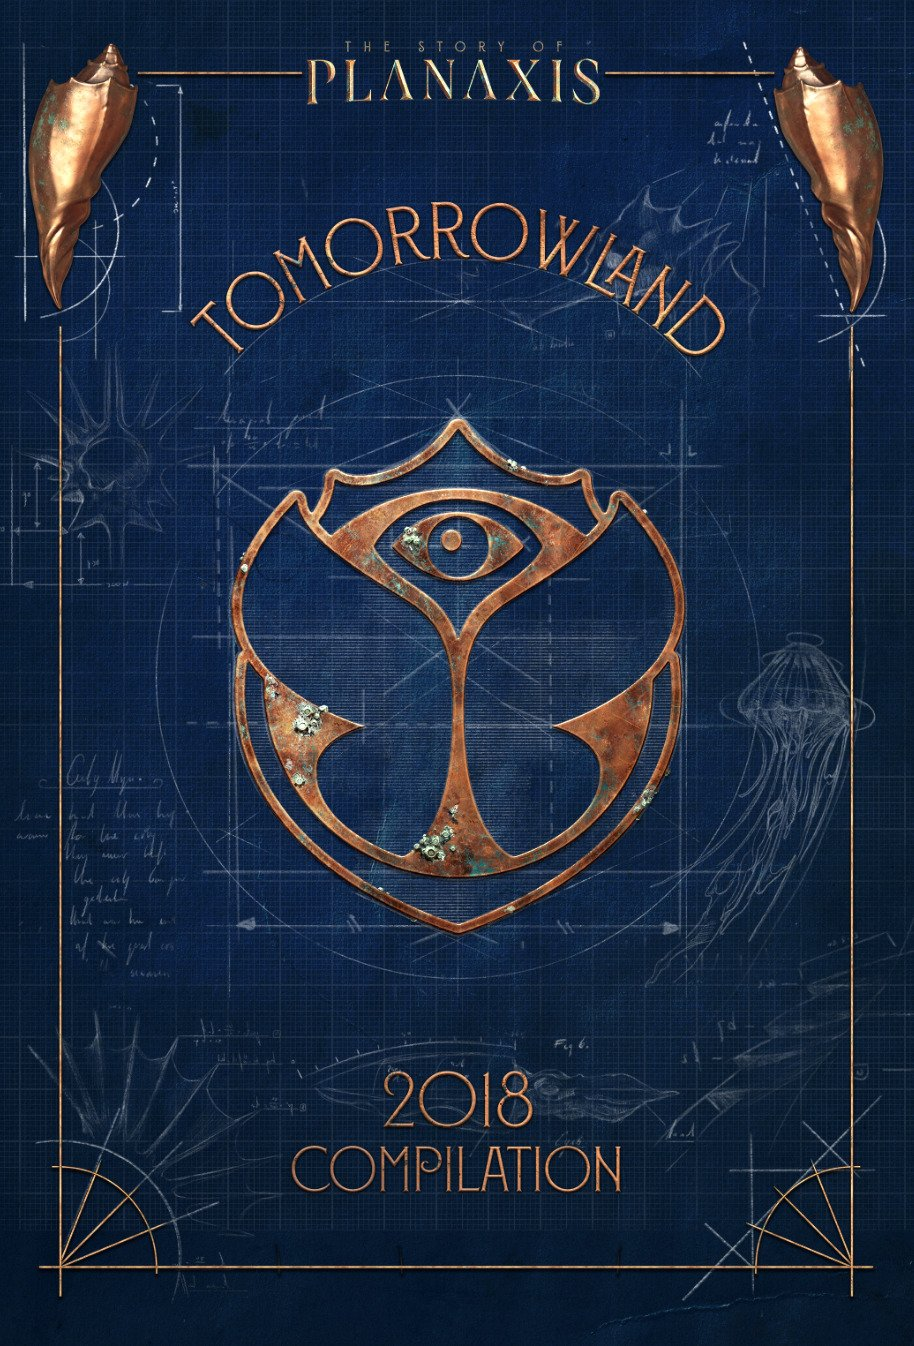 CD : VARIOUS ARTISTS - Tomorrowland 2018: Story Of Planaxis /  Various (United Kingdom - Import, 3PC)